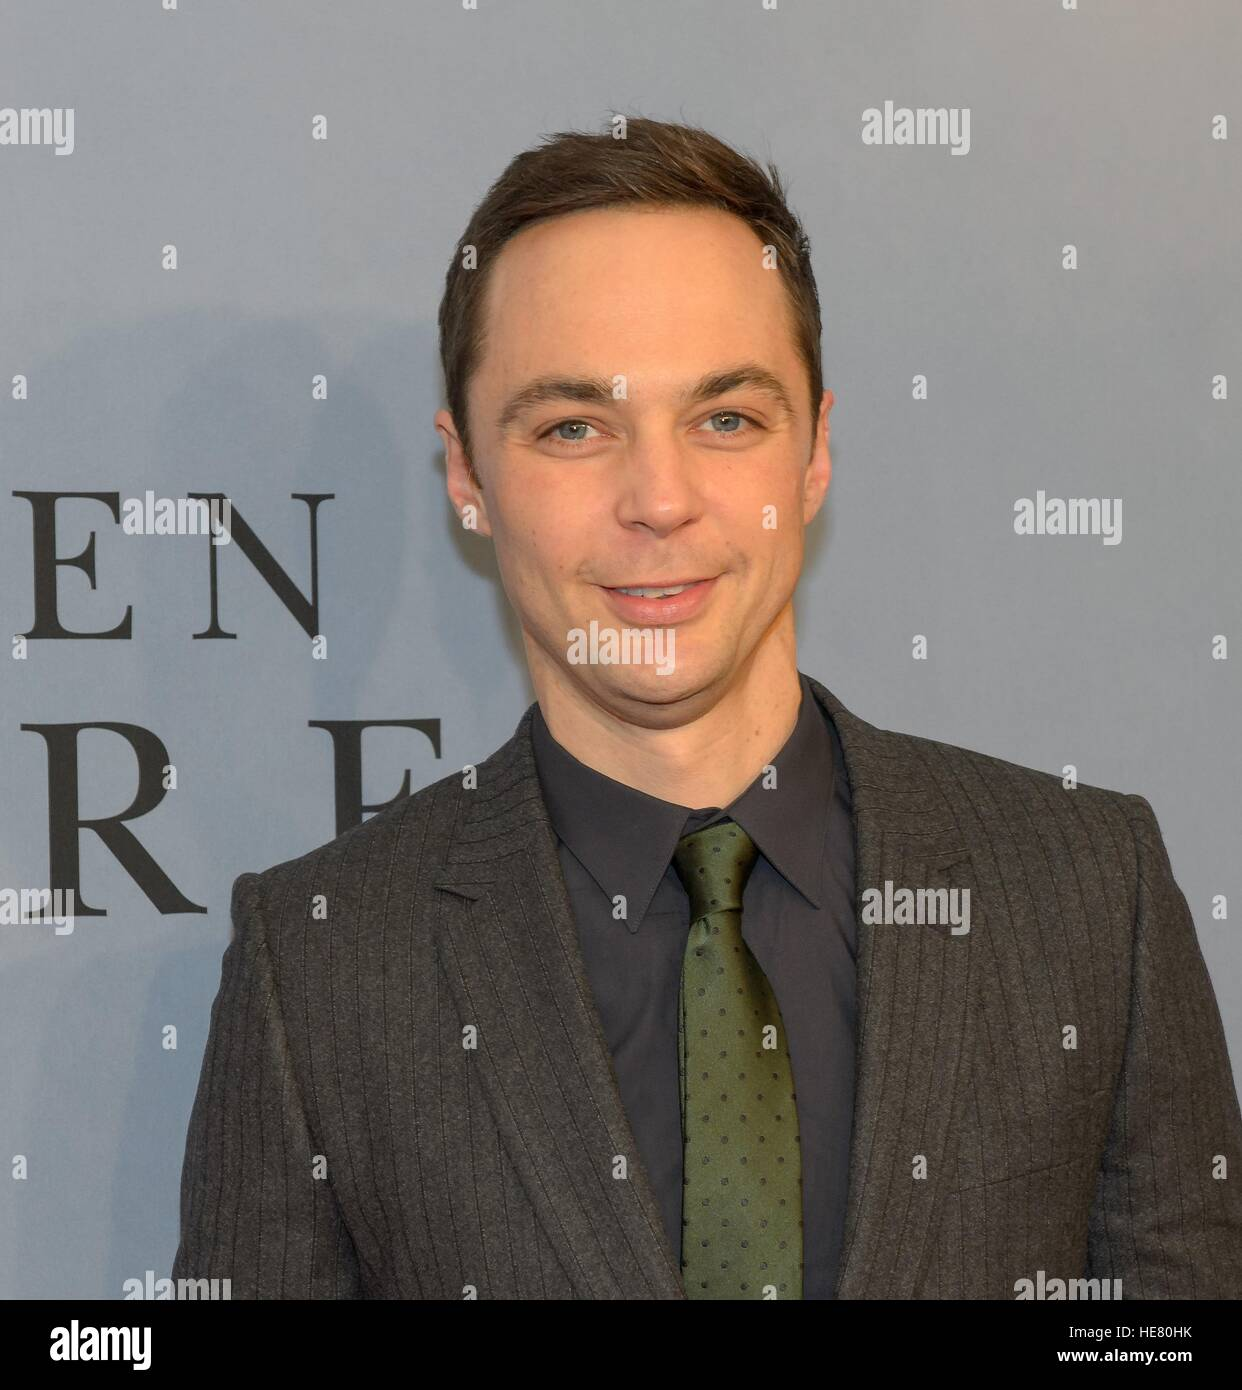 Actor Jim Parsons walks the red carpet during the global celebration event for the film Hidden Figures at the SVA - Stock Image